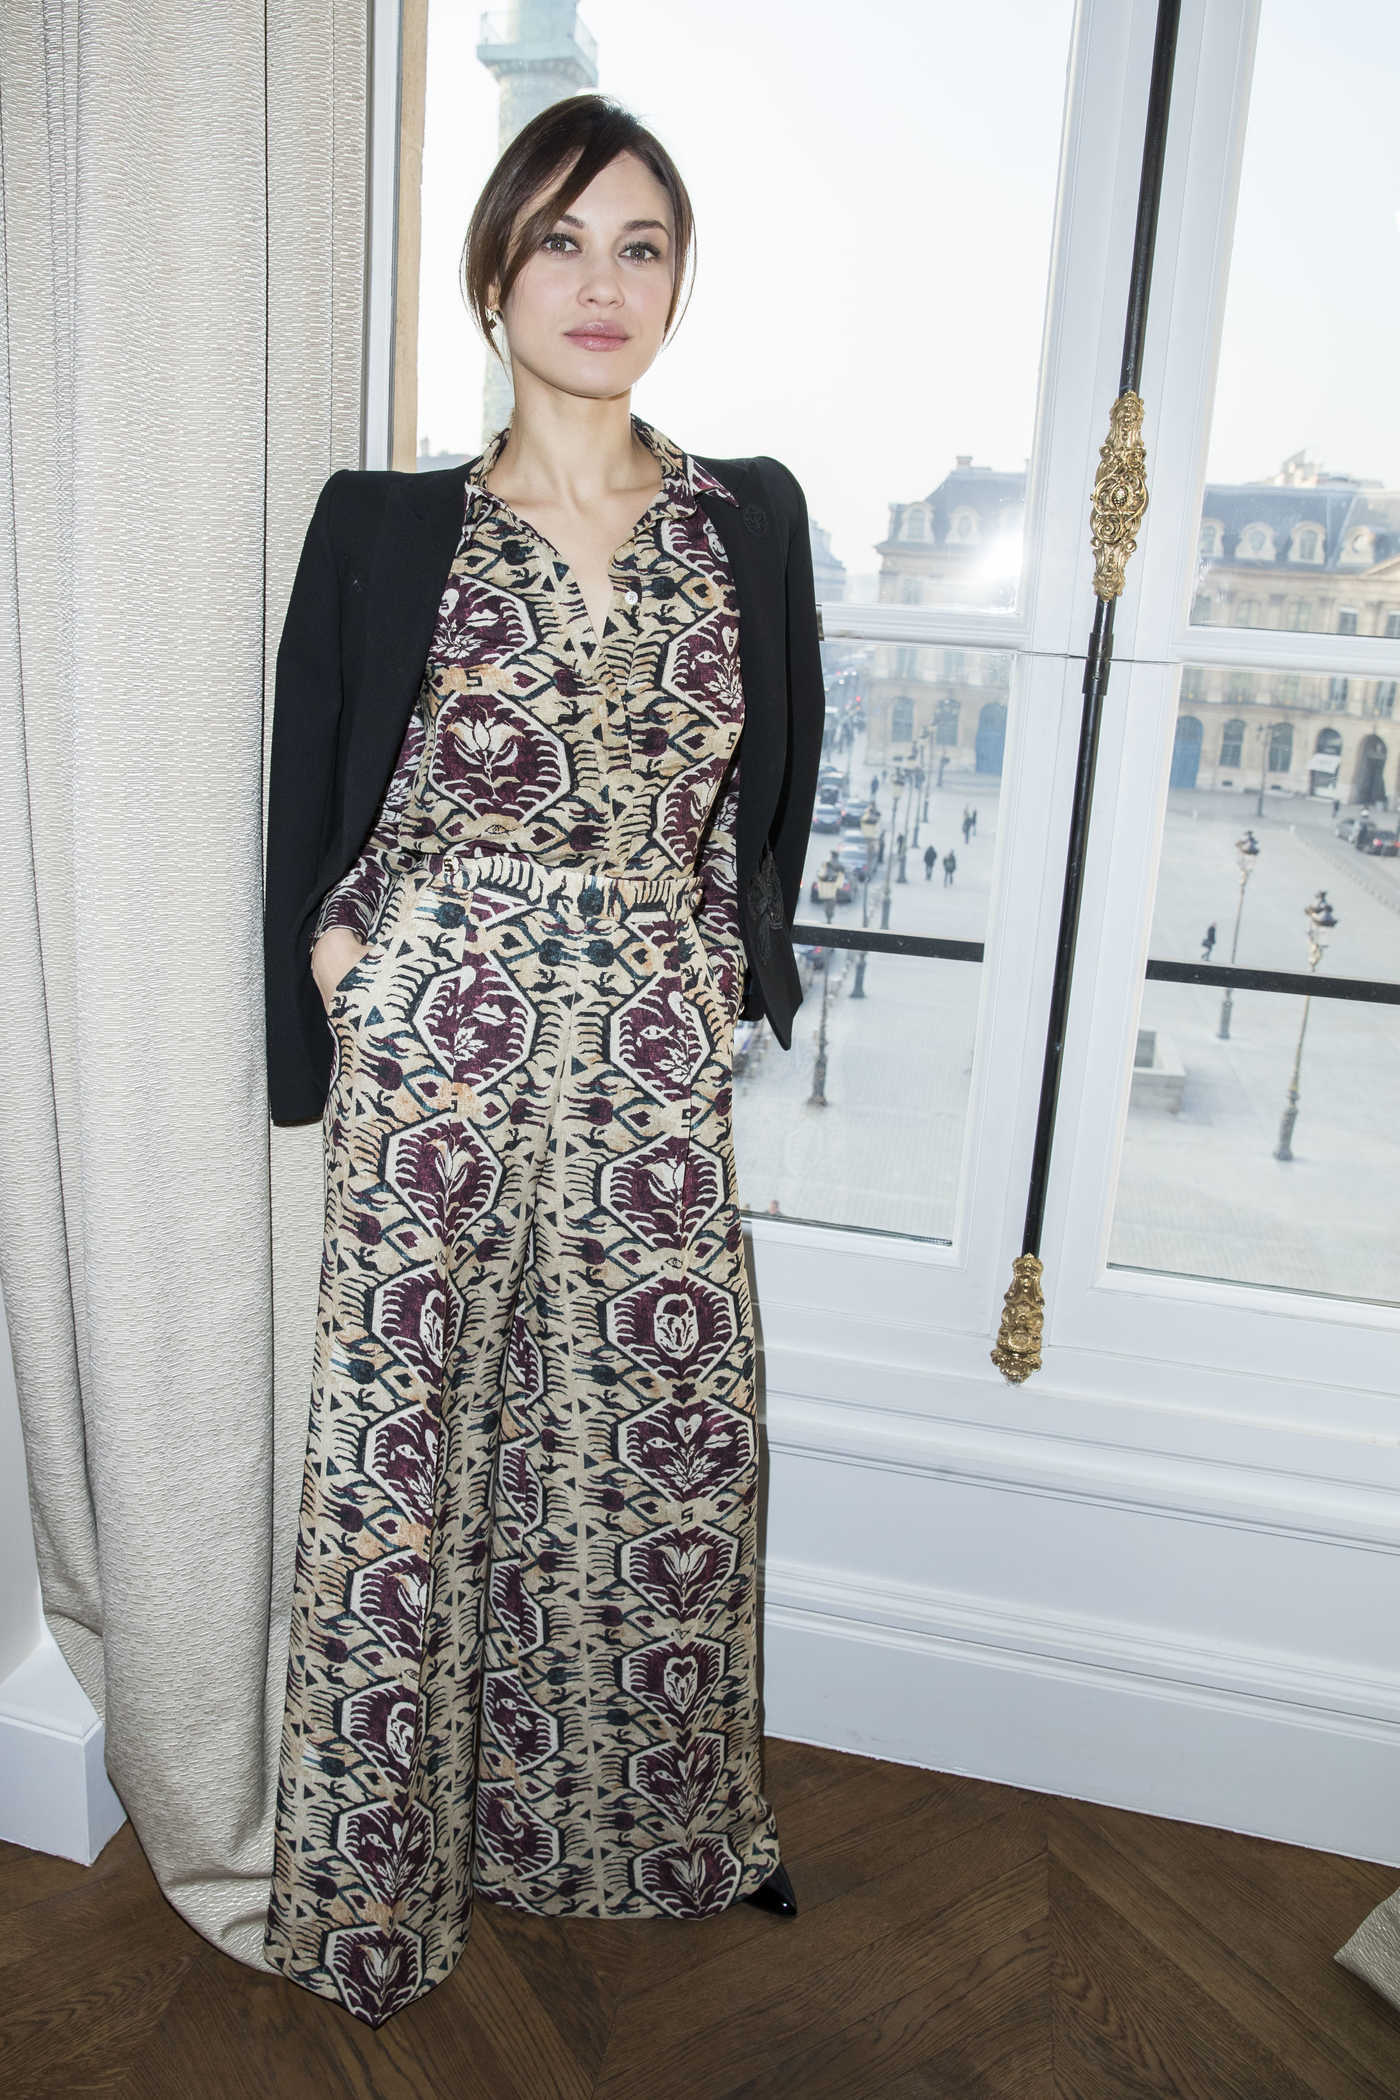 Olga Kurylenko Attends the 2017 Schiaparelli Haute Couture Show During Paris Fashion Week 01/23/2017